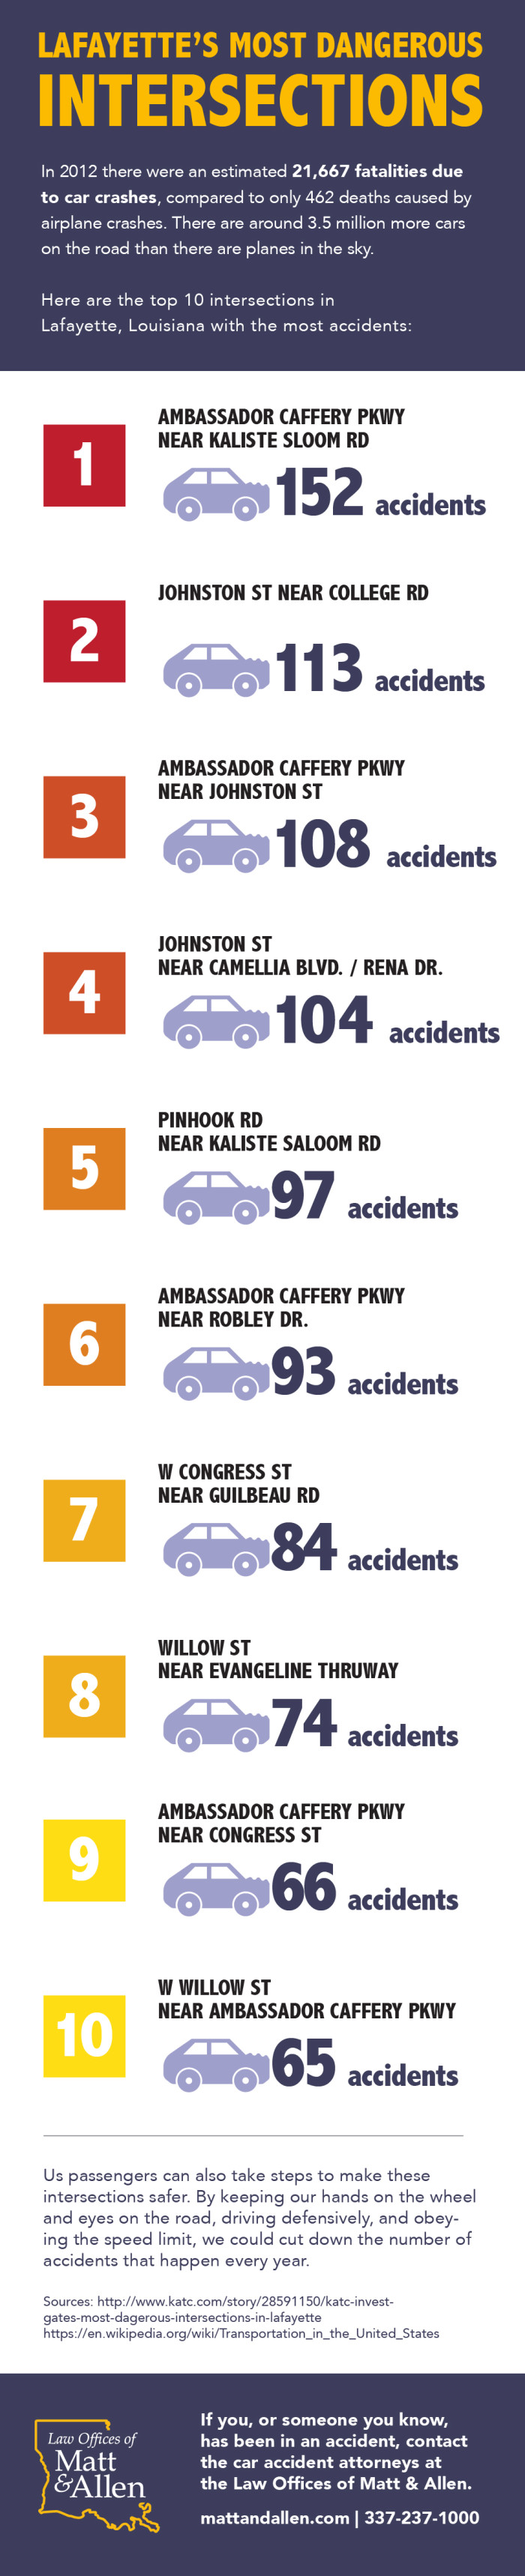 Most Dangerous Intersections in Lafayette, LA | Infographic